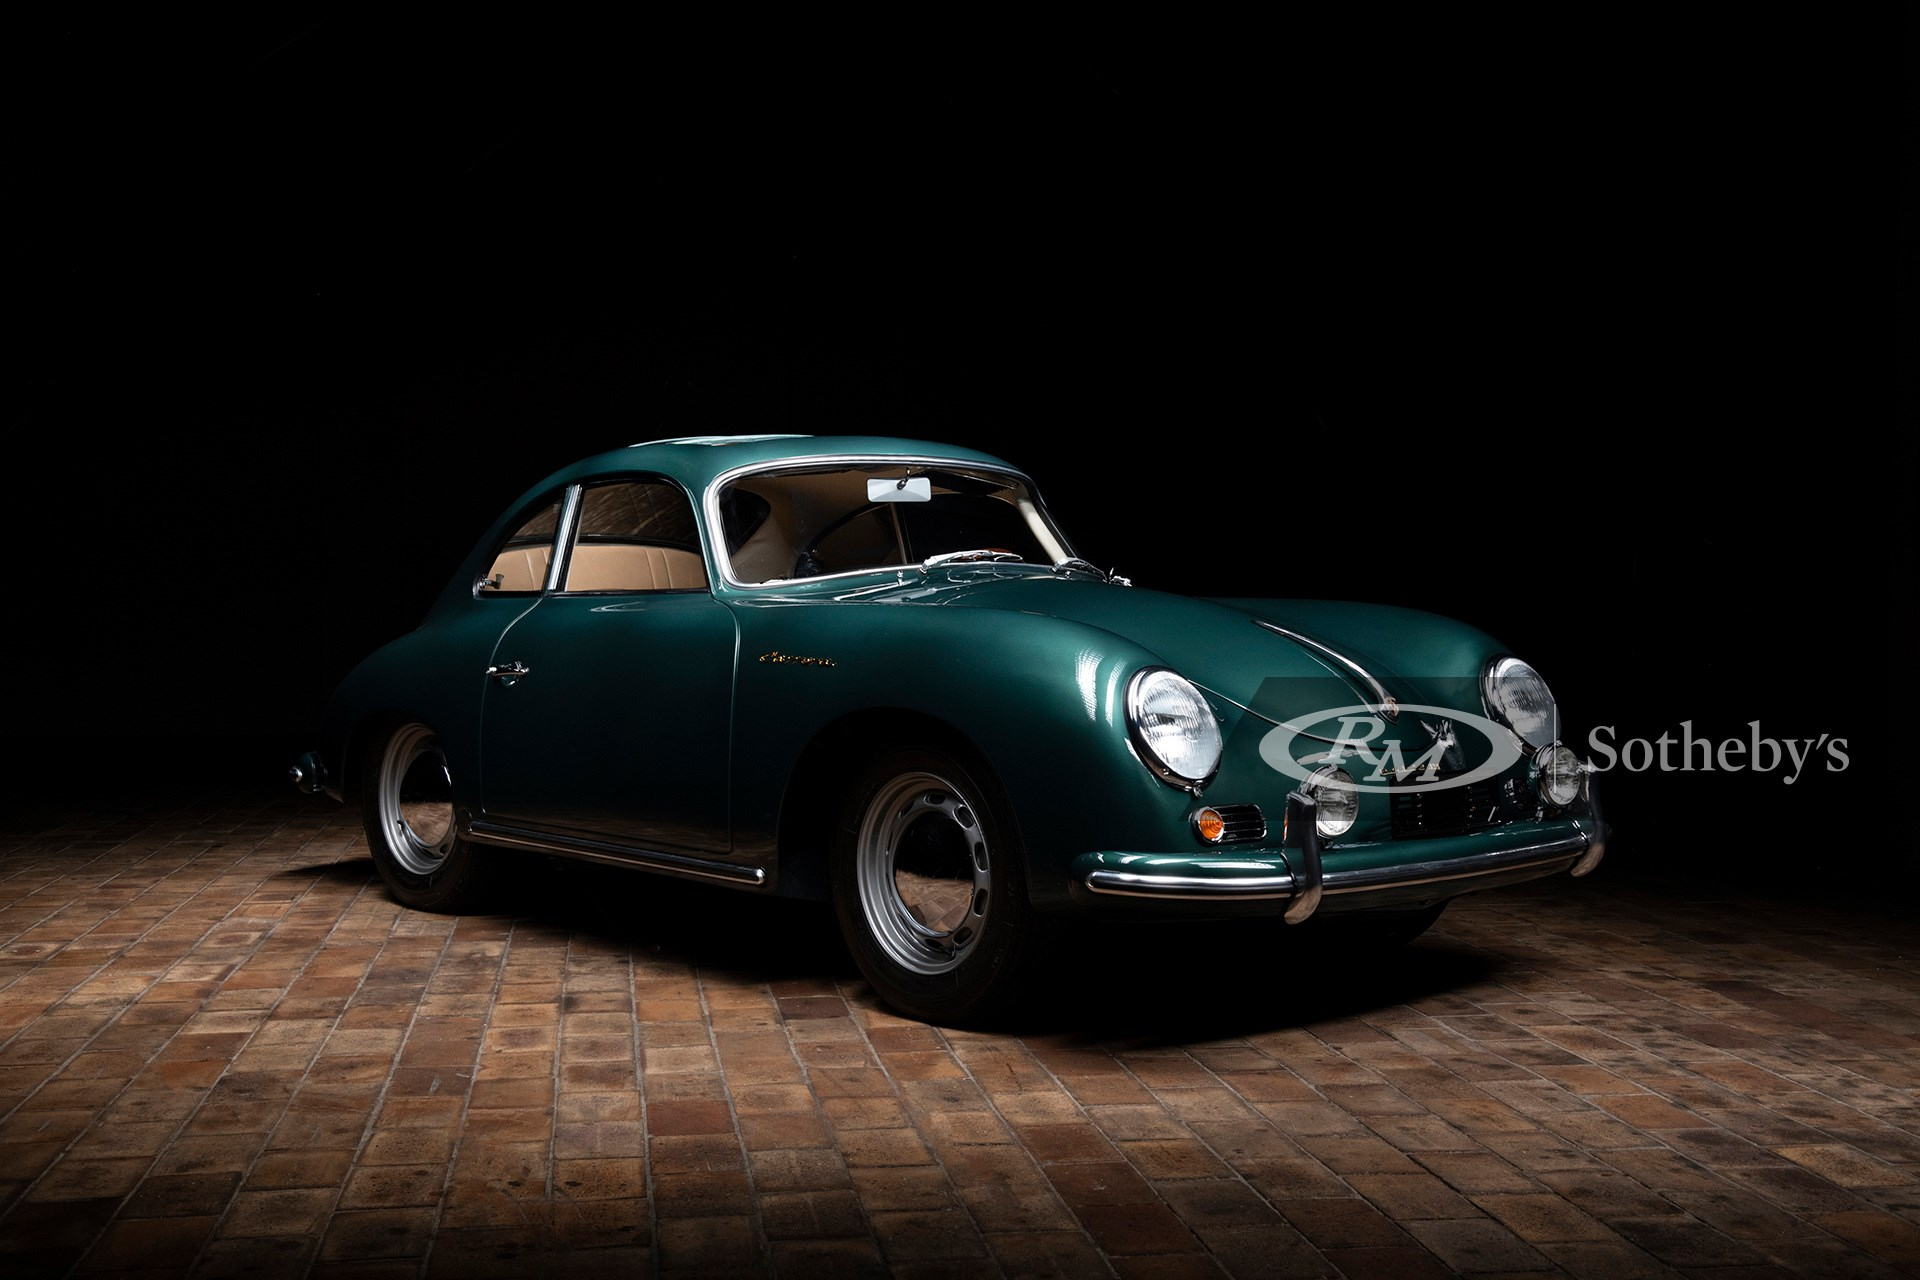 RM Sotheby's London 2020, Blog, 1955 Porsche 356 A Carrera GS Sunroof Coupé by Reutter